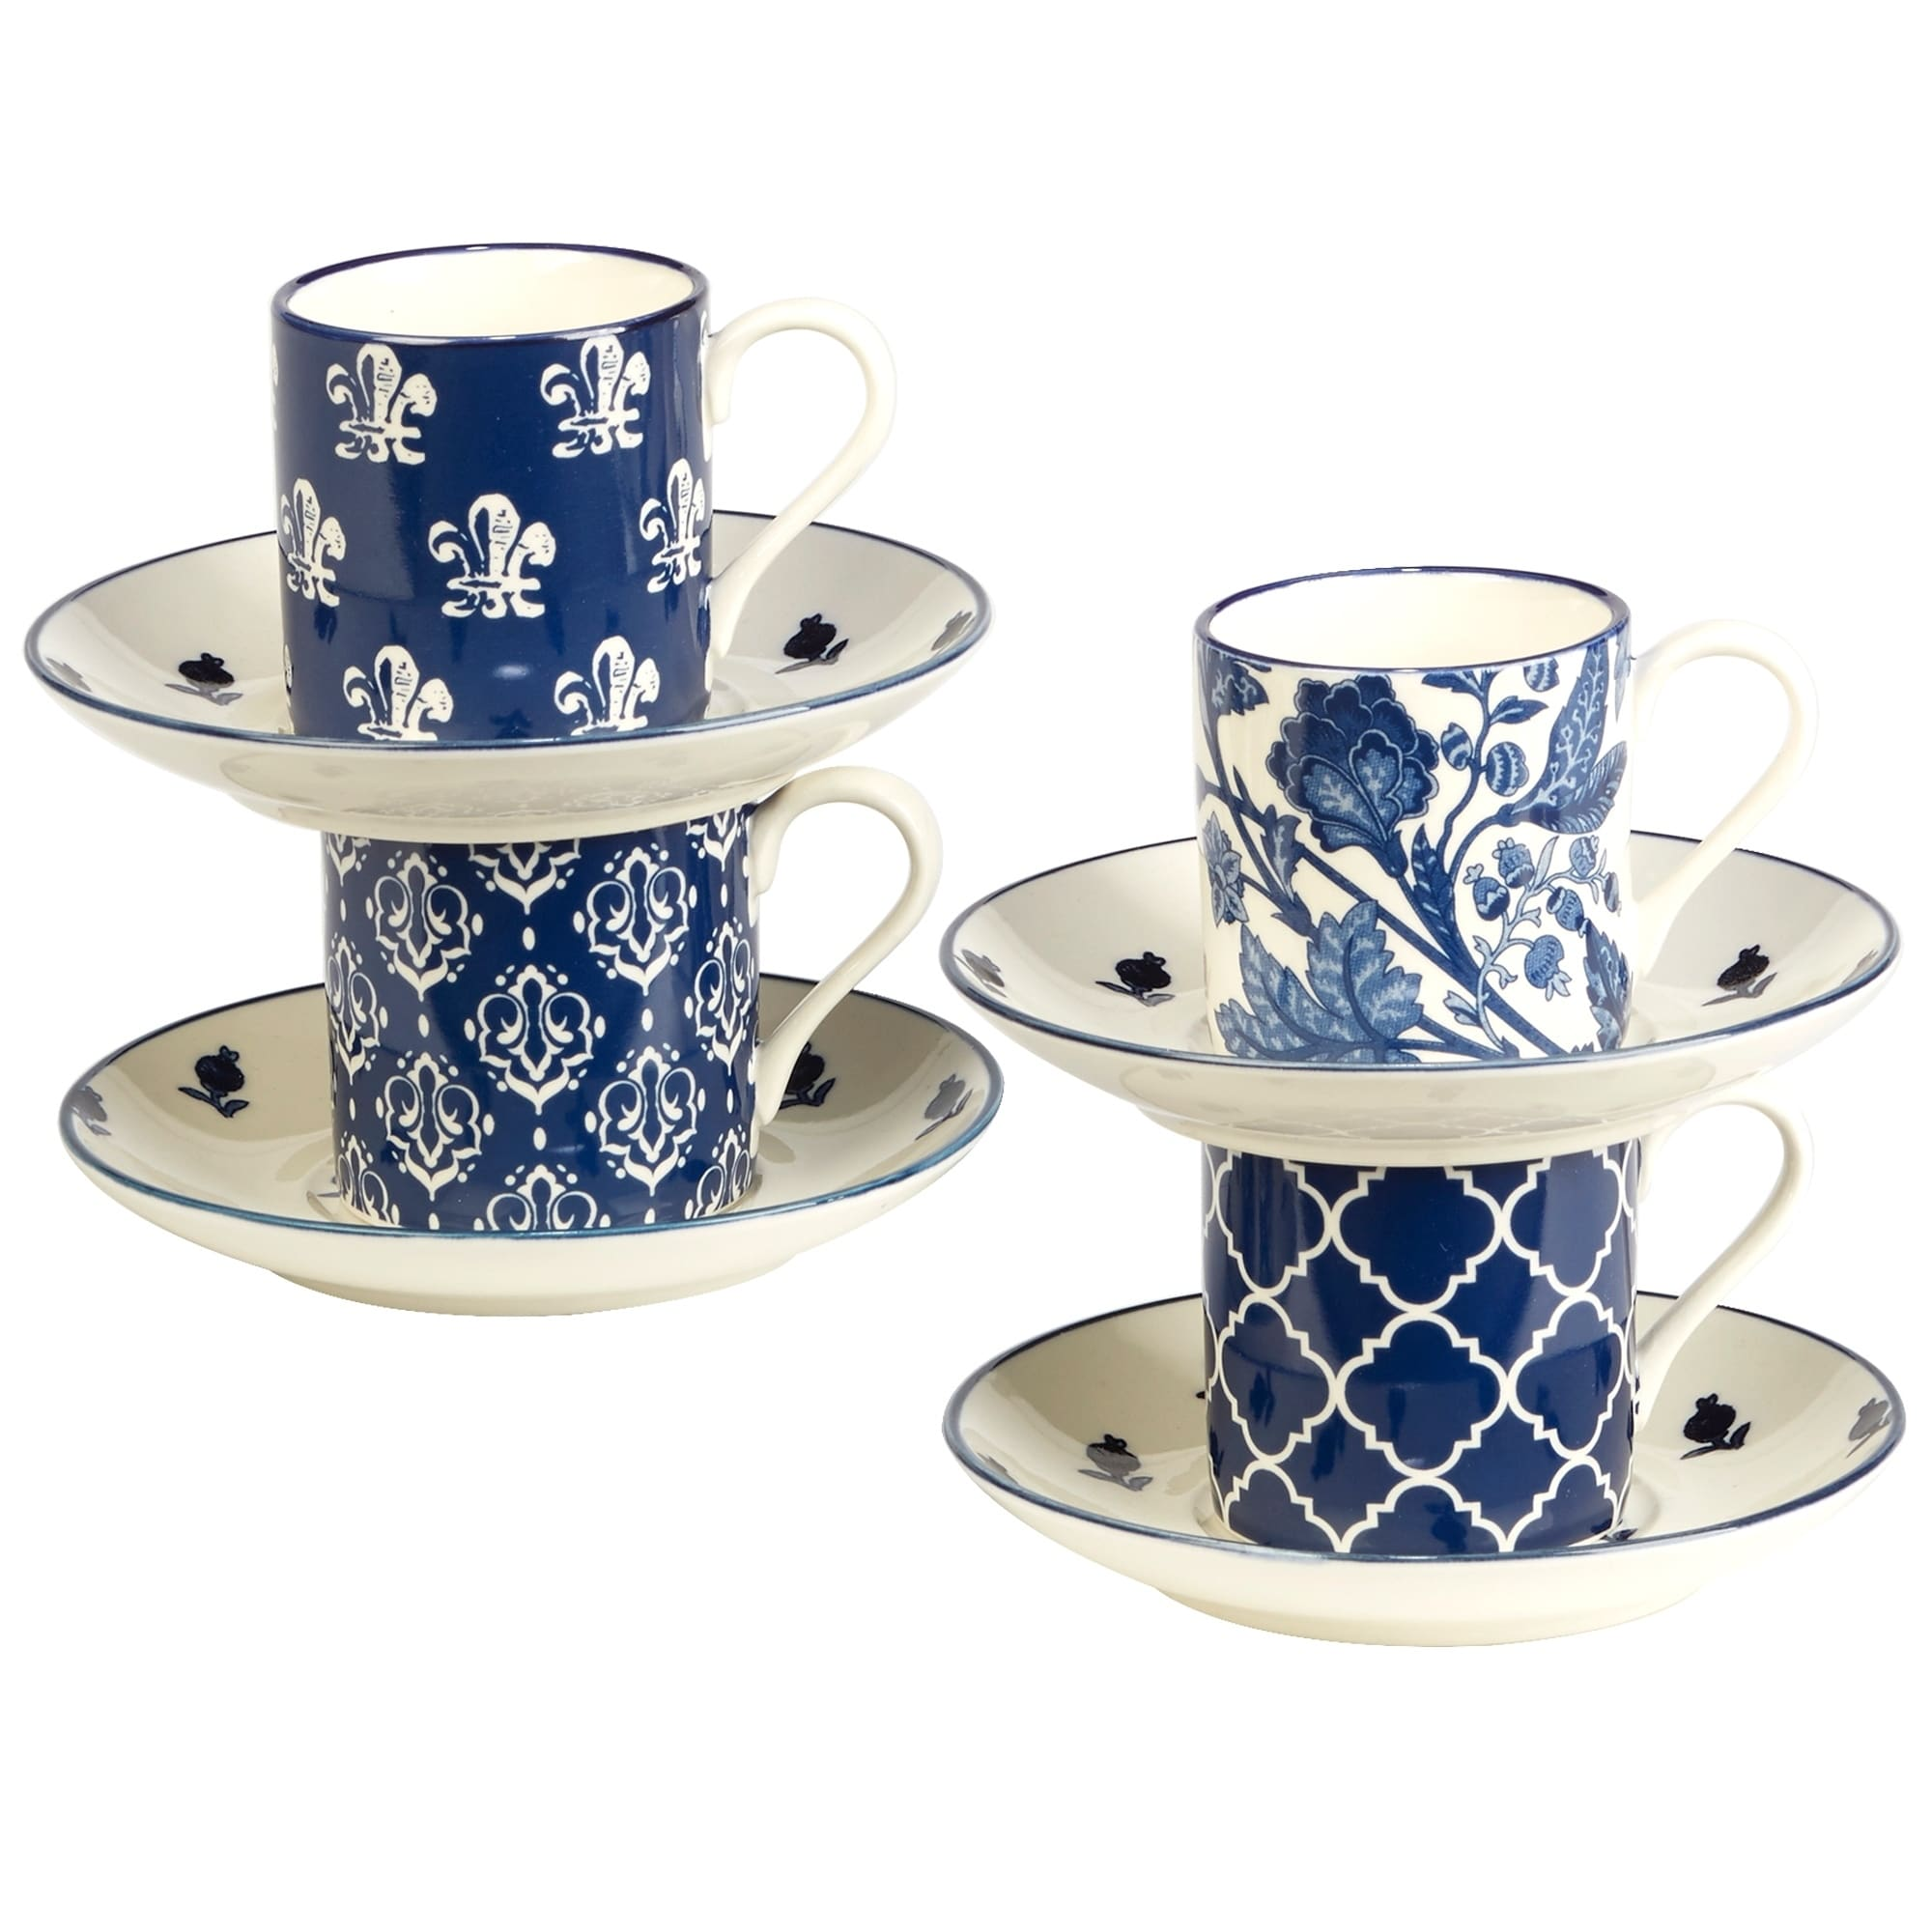 Certified International Blue Indigo 4 oz Espresso Cup and Saucer Set in  Assorted Designs Set of 4 - Free Shipping On Orders Over $45 -  Overstock.com - ...